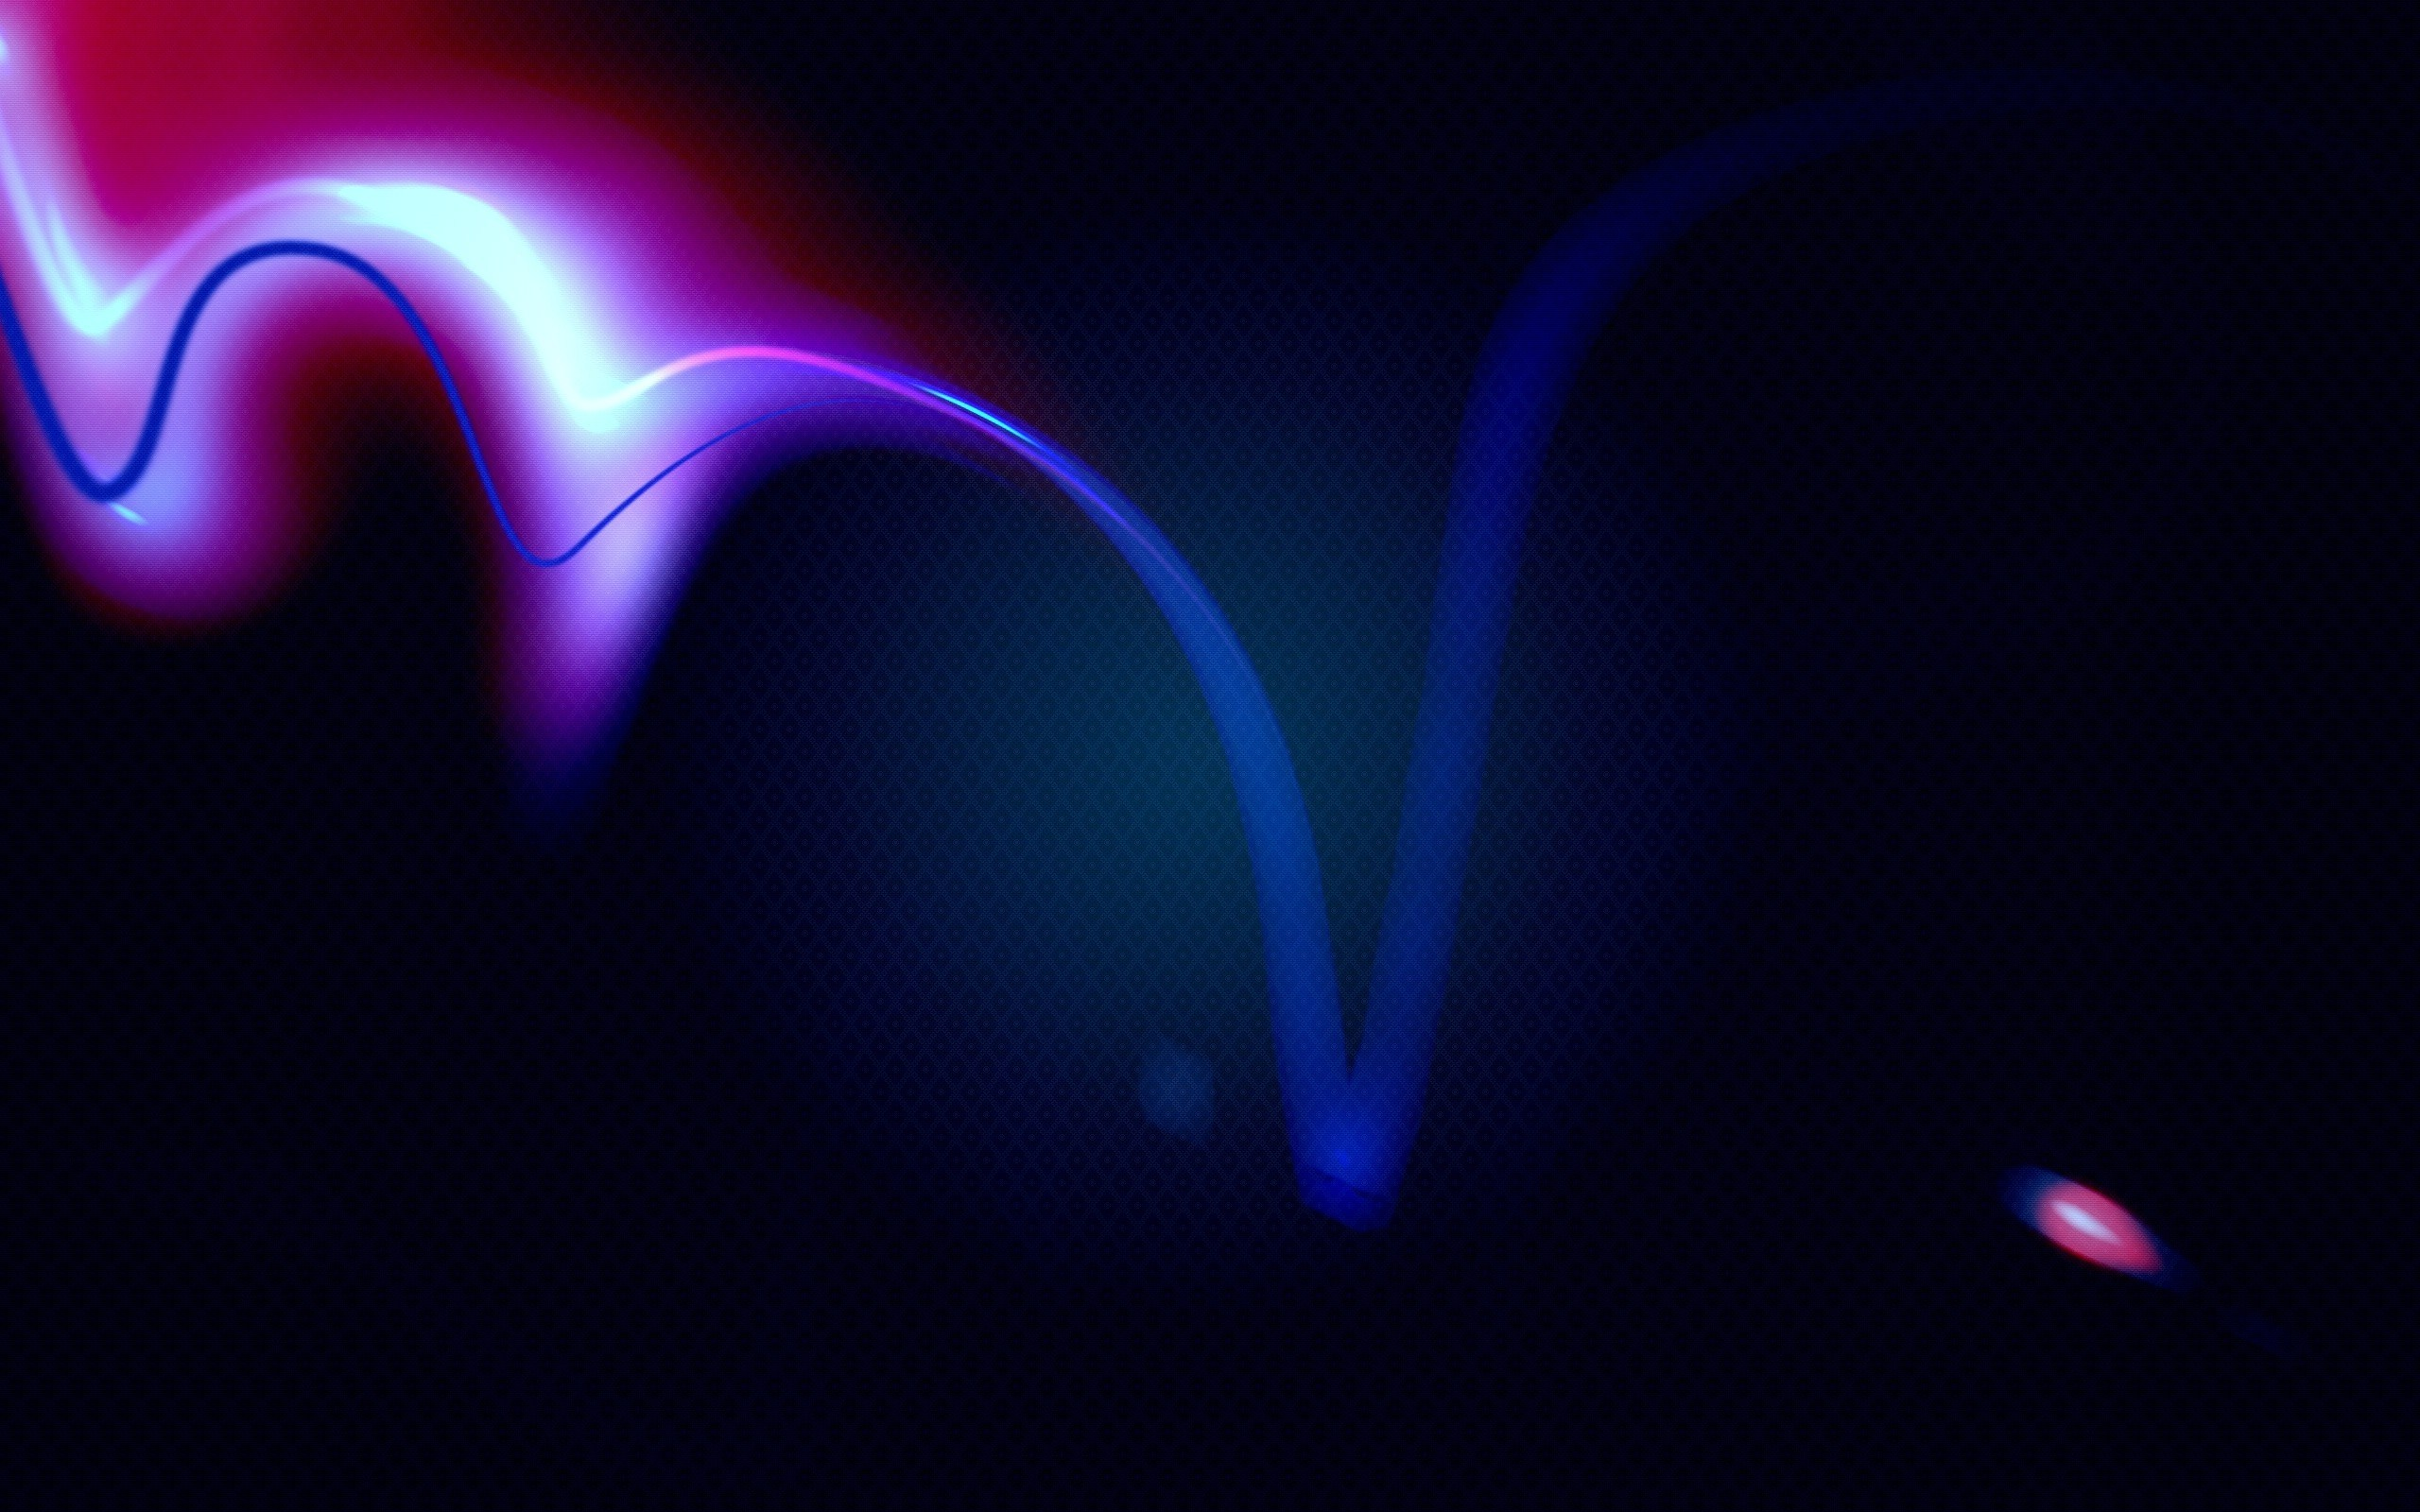 Light Wallpapers Backgrounds Hd 38